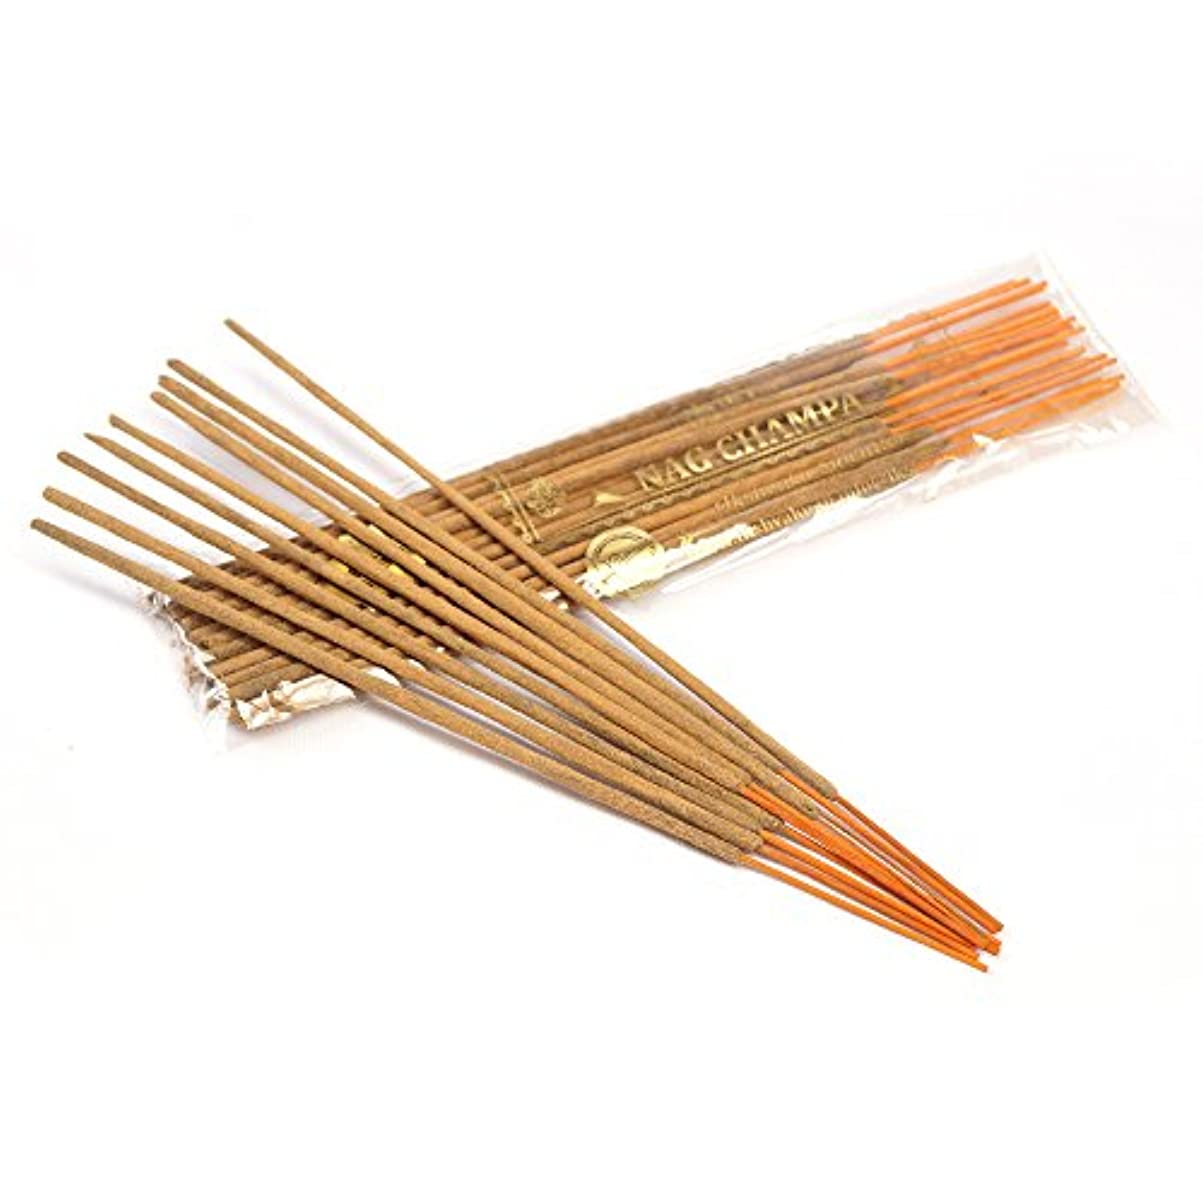 製品ベリー郊外Nag Champa Incense Sticks 250